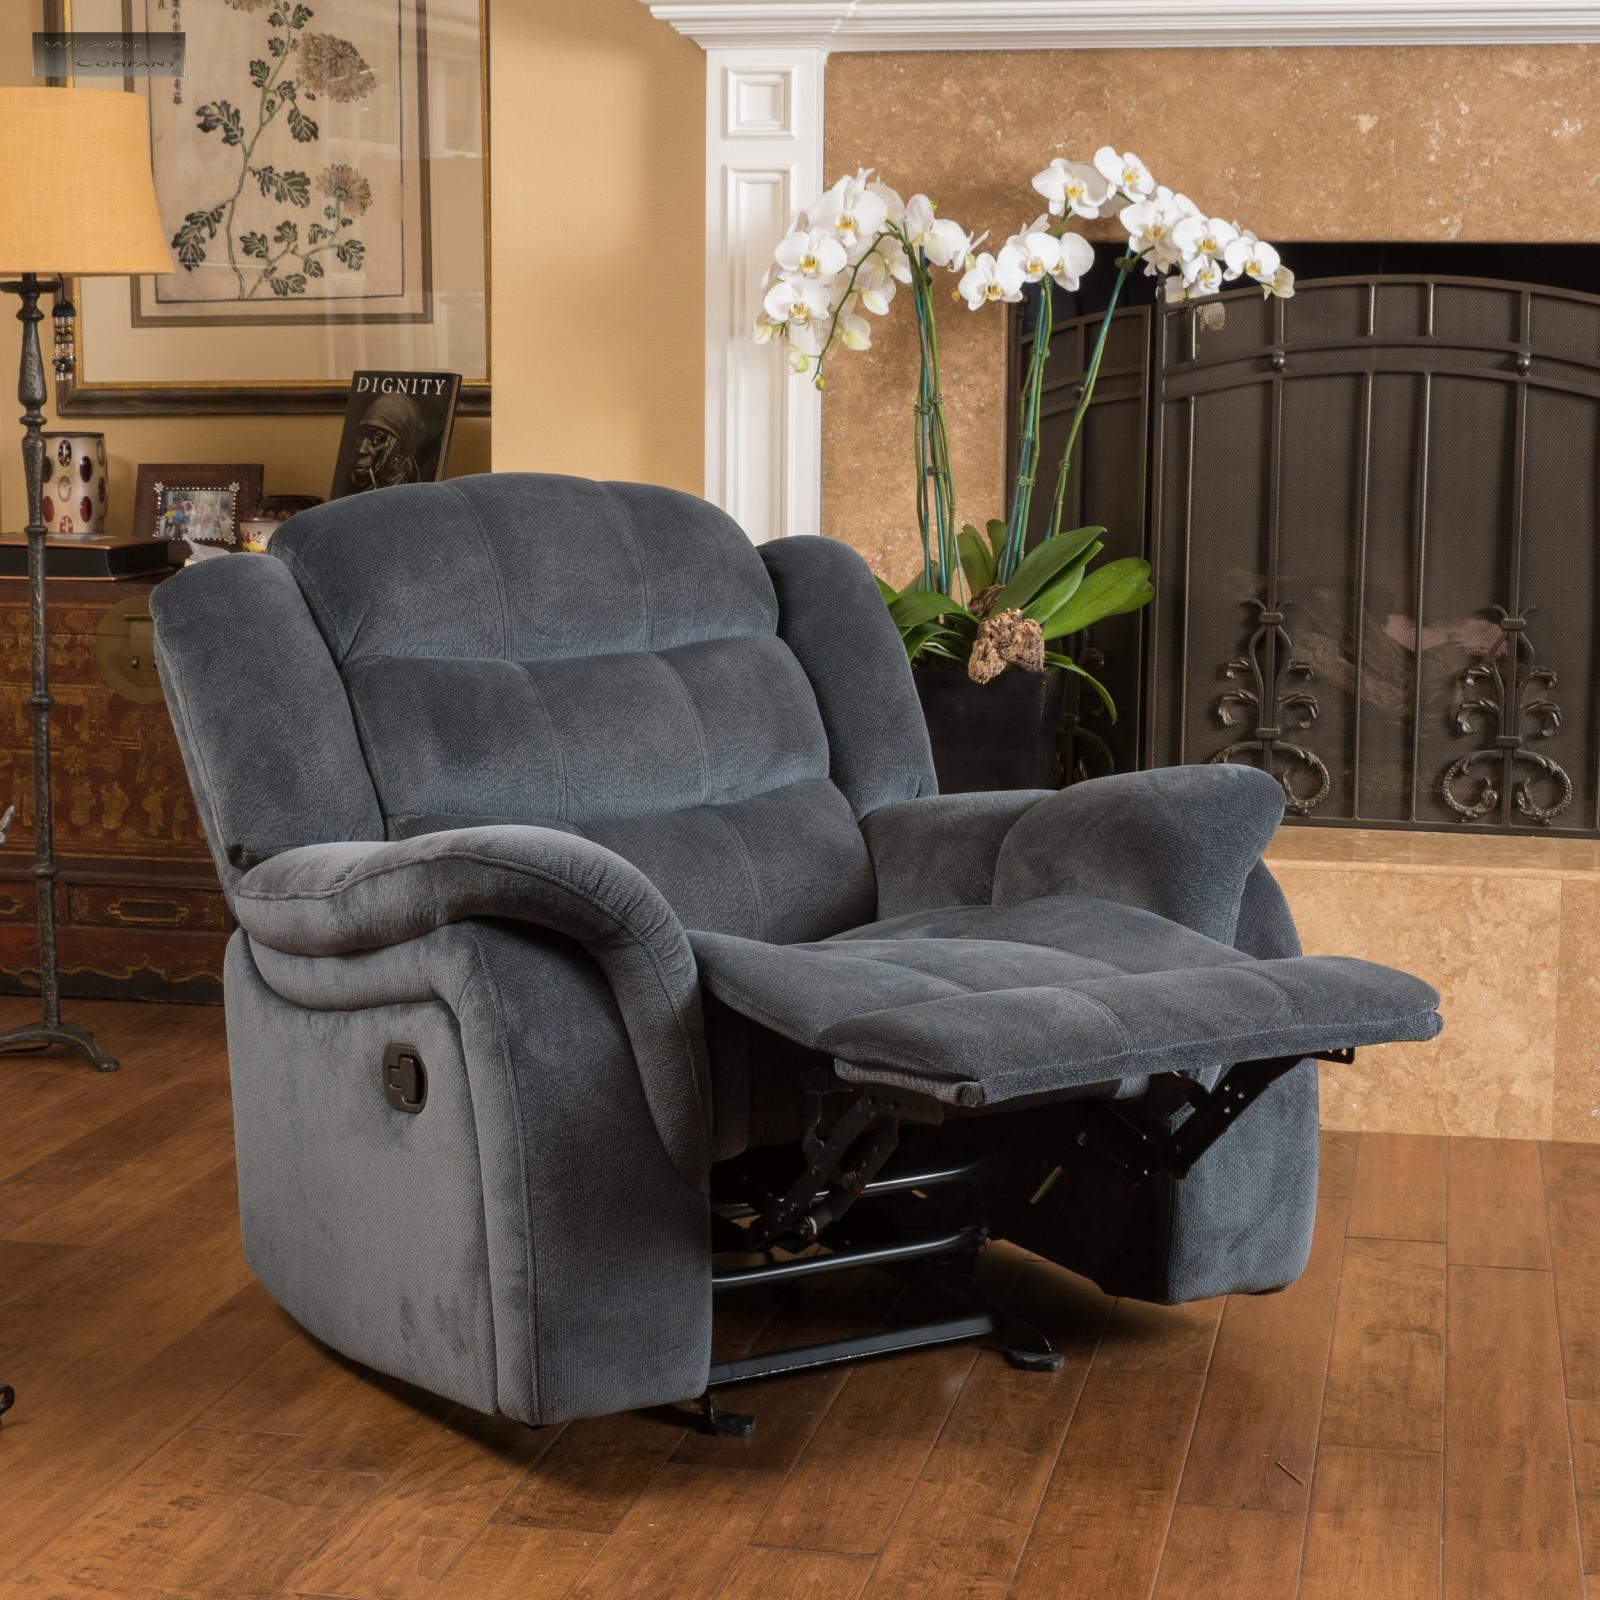 Brown Fabric Recliner Glider Lazy Chair Reclining Seat Living Room Furniture Boy